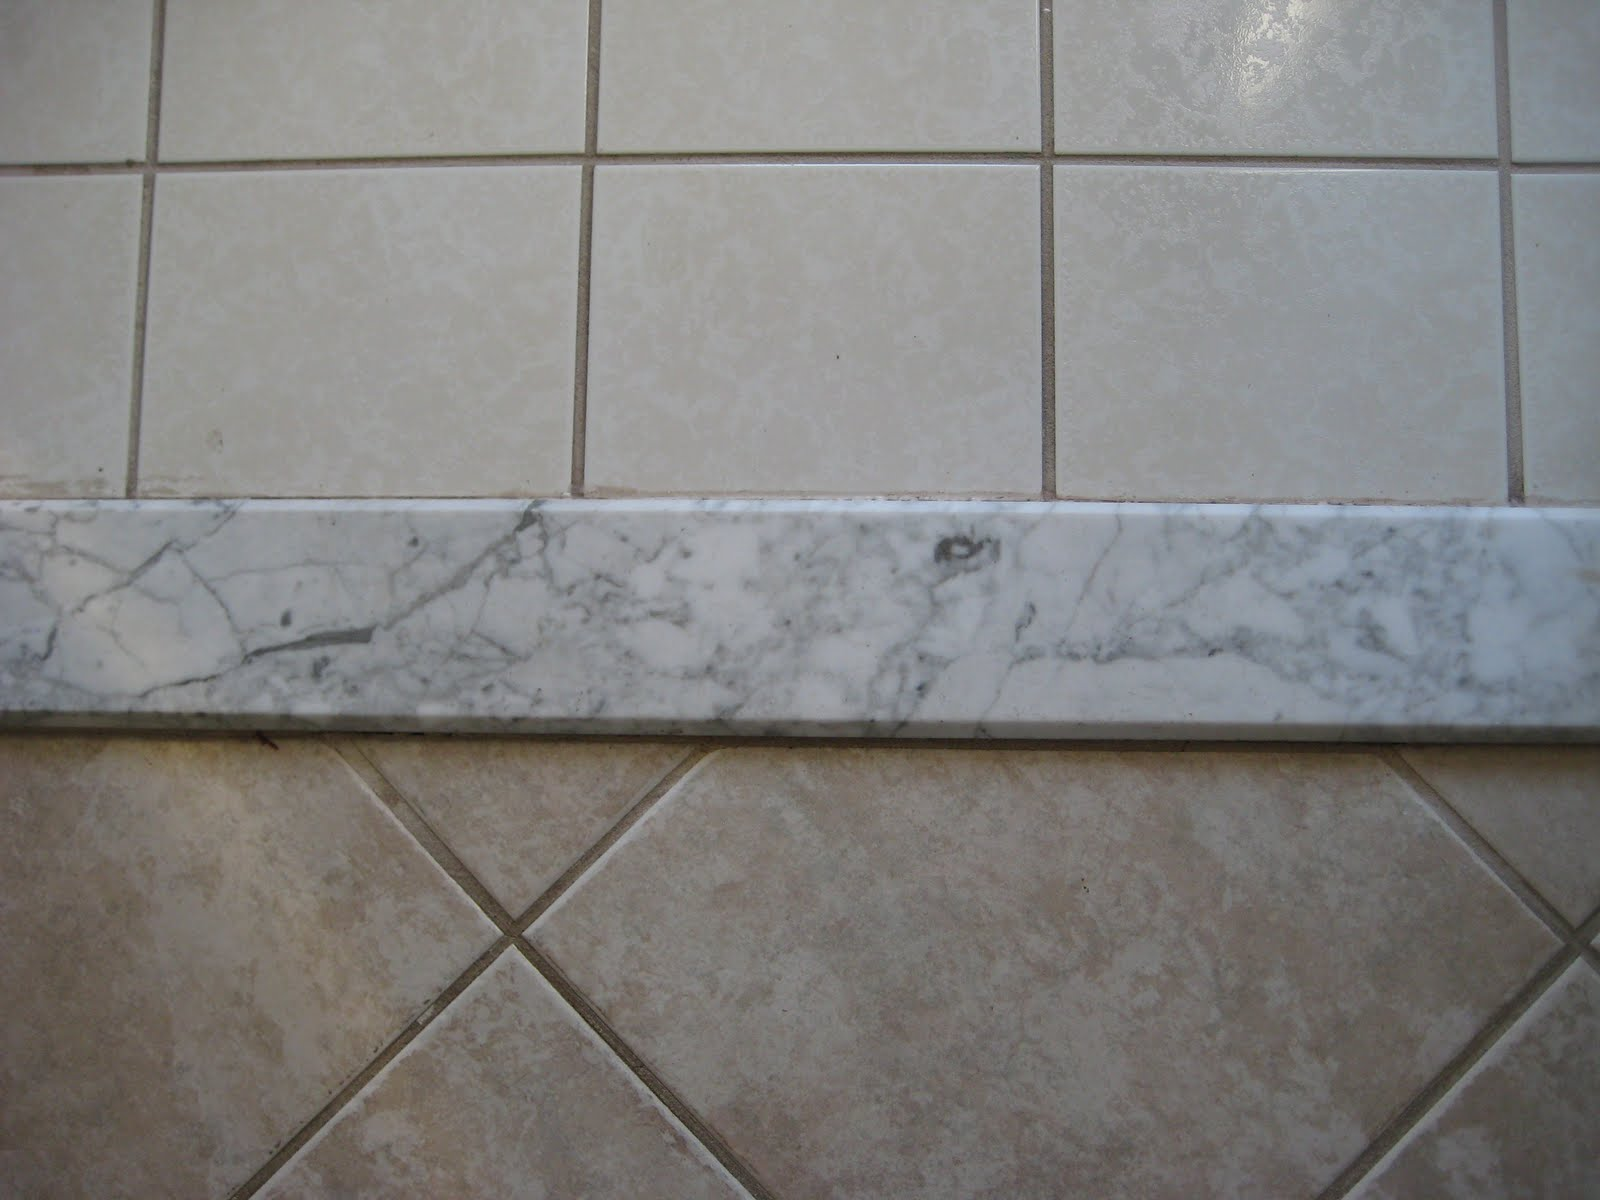 Tile Saddle - the divider piece between two tiled rooms. Tips for re-tiling a bathroom